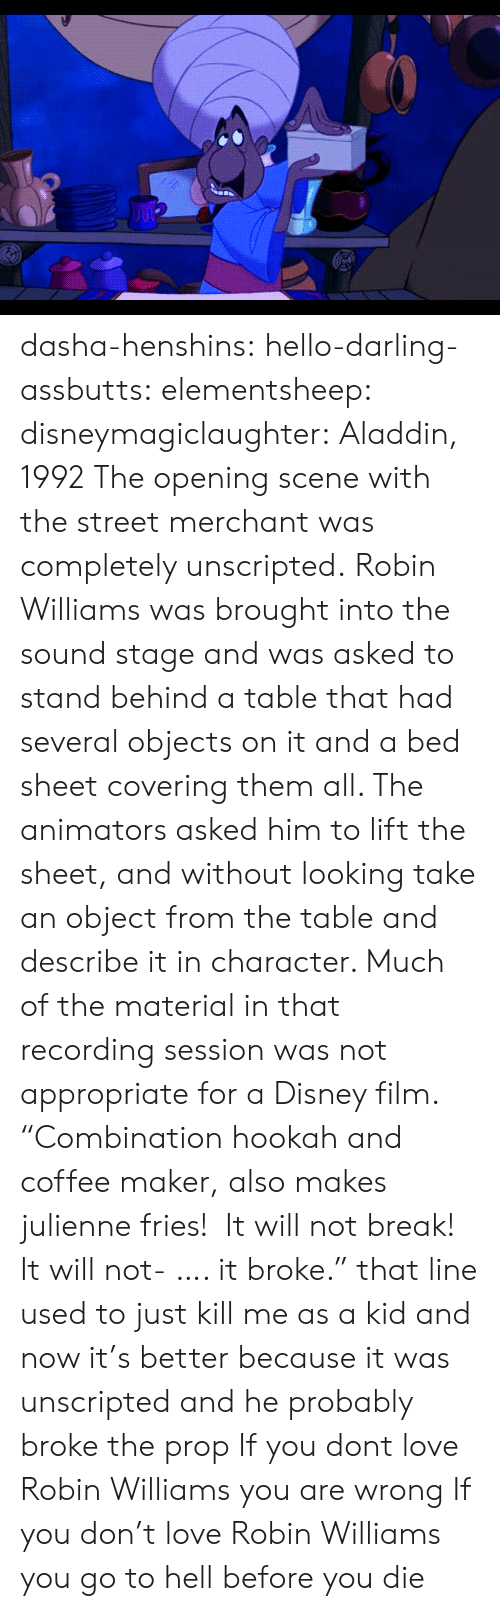 "Aladdin, Disney, and Hello: dasha-henshins: hello-darling-assbutts:  elementsheep:  disneymagiclaughter:  Aladdin, 1992 The opening scene with the street merchant was completely unscripted. Robin Williams was brought into the sound stage and was asked to stand behind a table that had several objects on it and a bed sheet covering them all. The animators asked him to lift the sheet, and without looking take an object from the table and describe it in character. Much of the material in that recording session was not appropriate for a Disney film.   ""Combination hookah and coffee maker, also makes julienne fries!  It will not break! It will not- …. it broke."" that line used to just kill me as a kid and now it's better because it was unscripted and he probably broke the prop  If you dont love Robin Williams you are wrong   If you don't love Robin Williams you go to hell before you die"